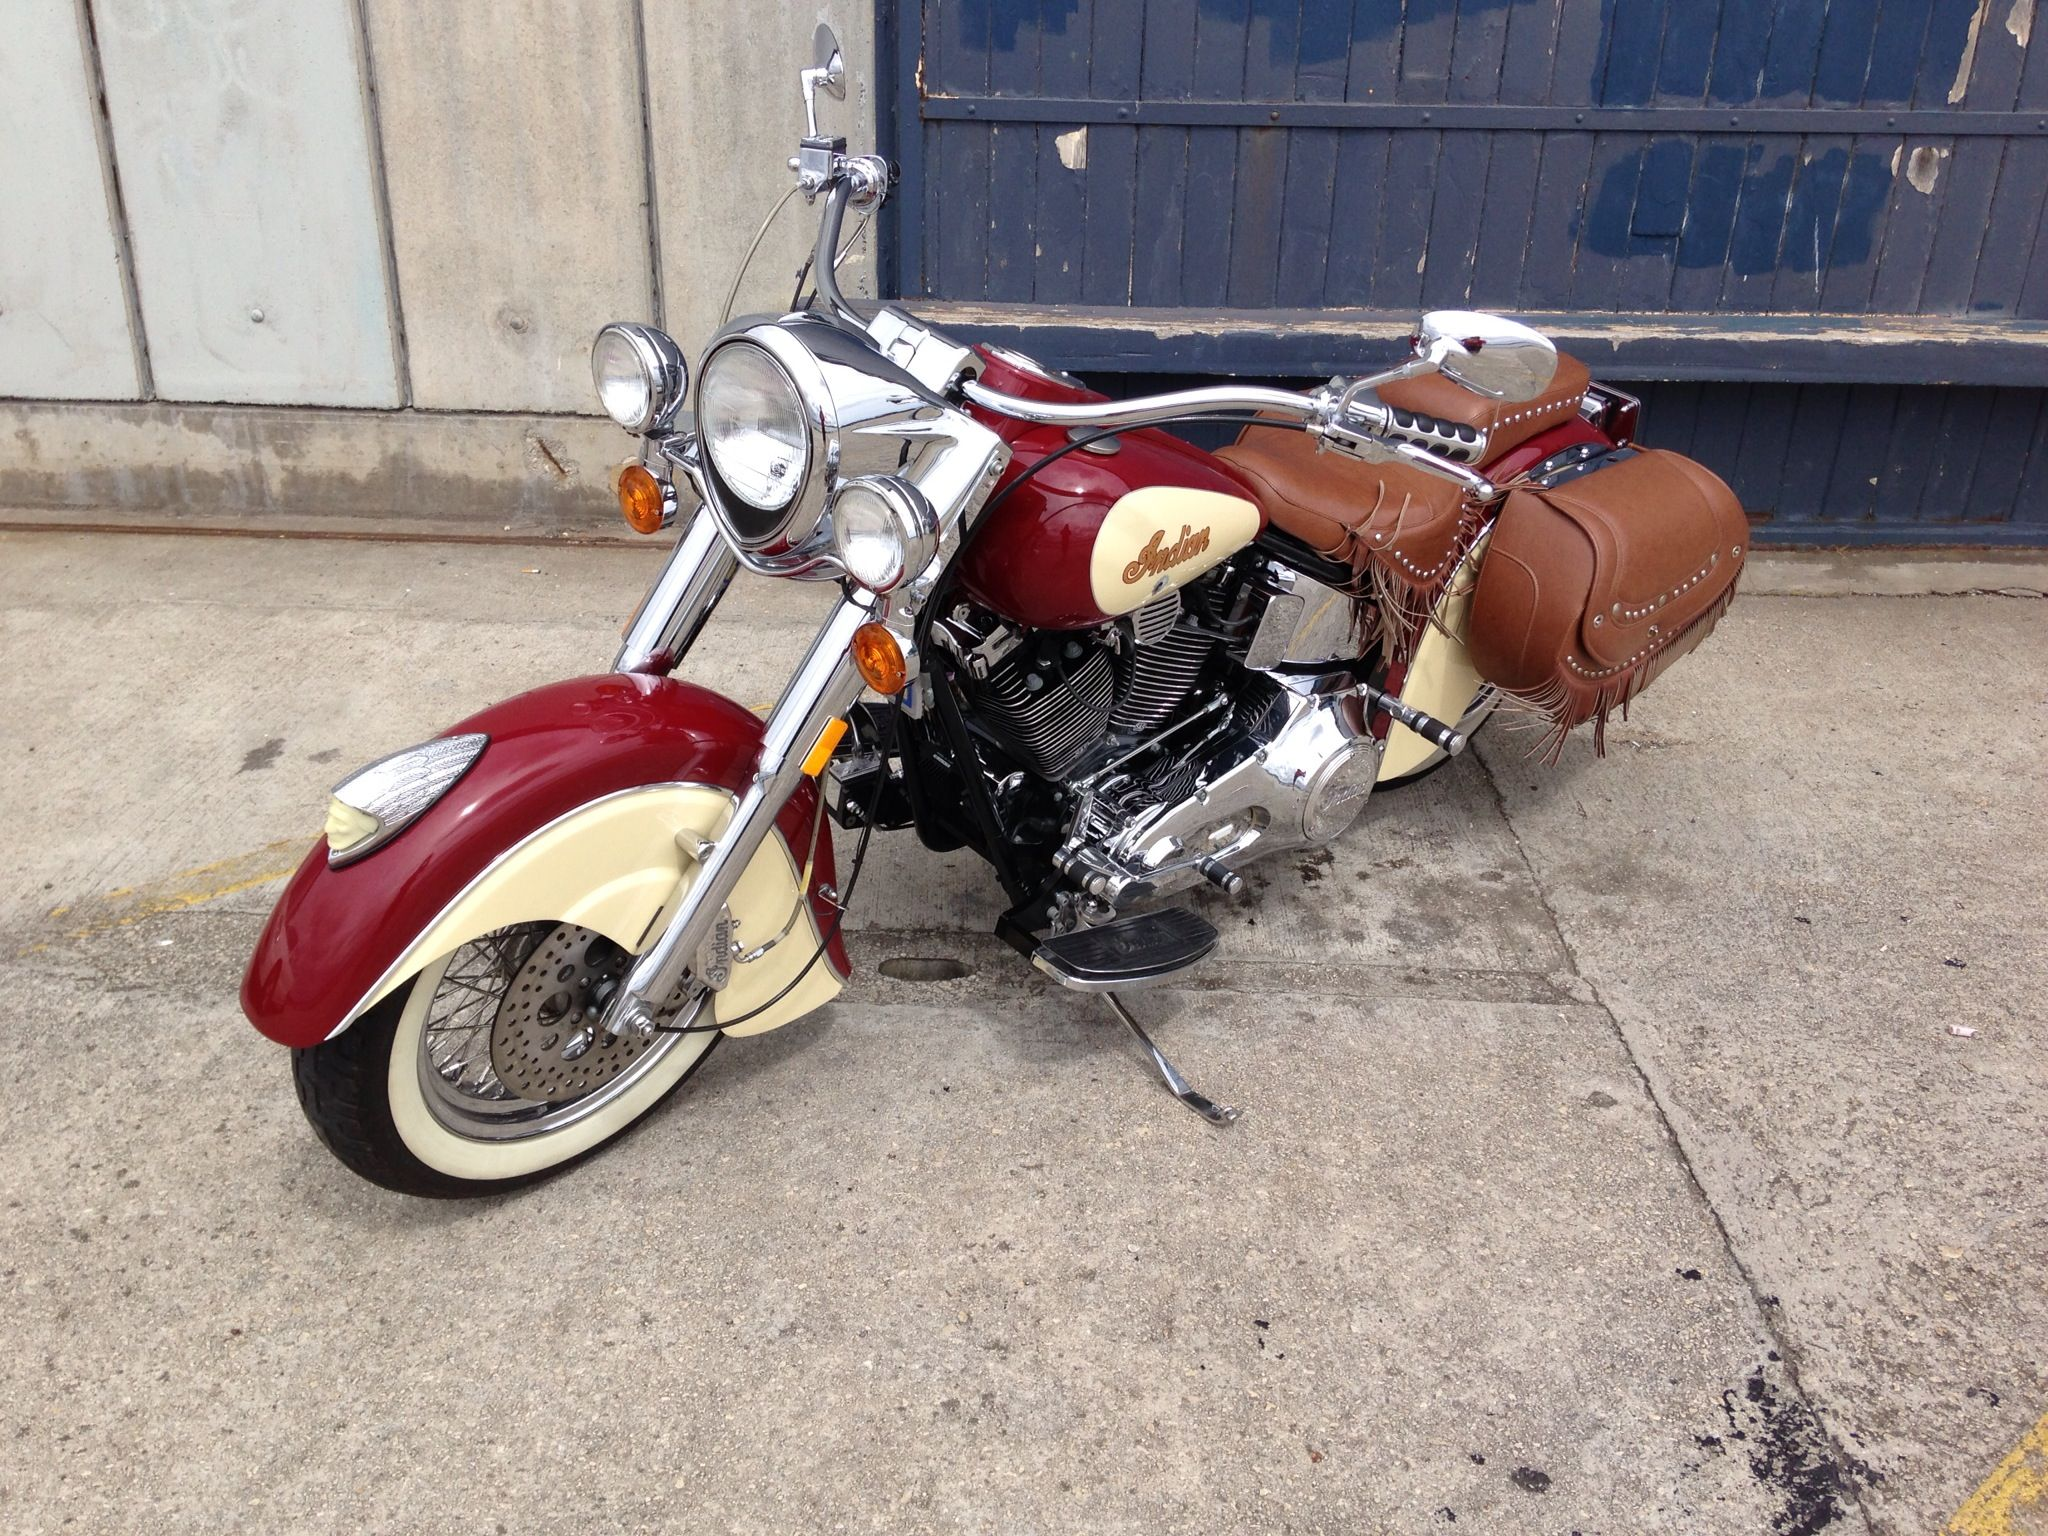 An Immaculate Indian Spotted At Beauty Point Wharf Tasmania Tasmania Motorcycle Spotted